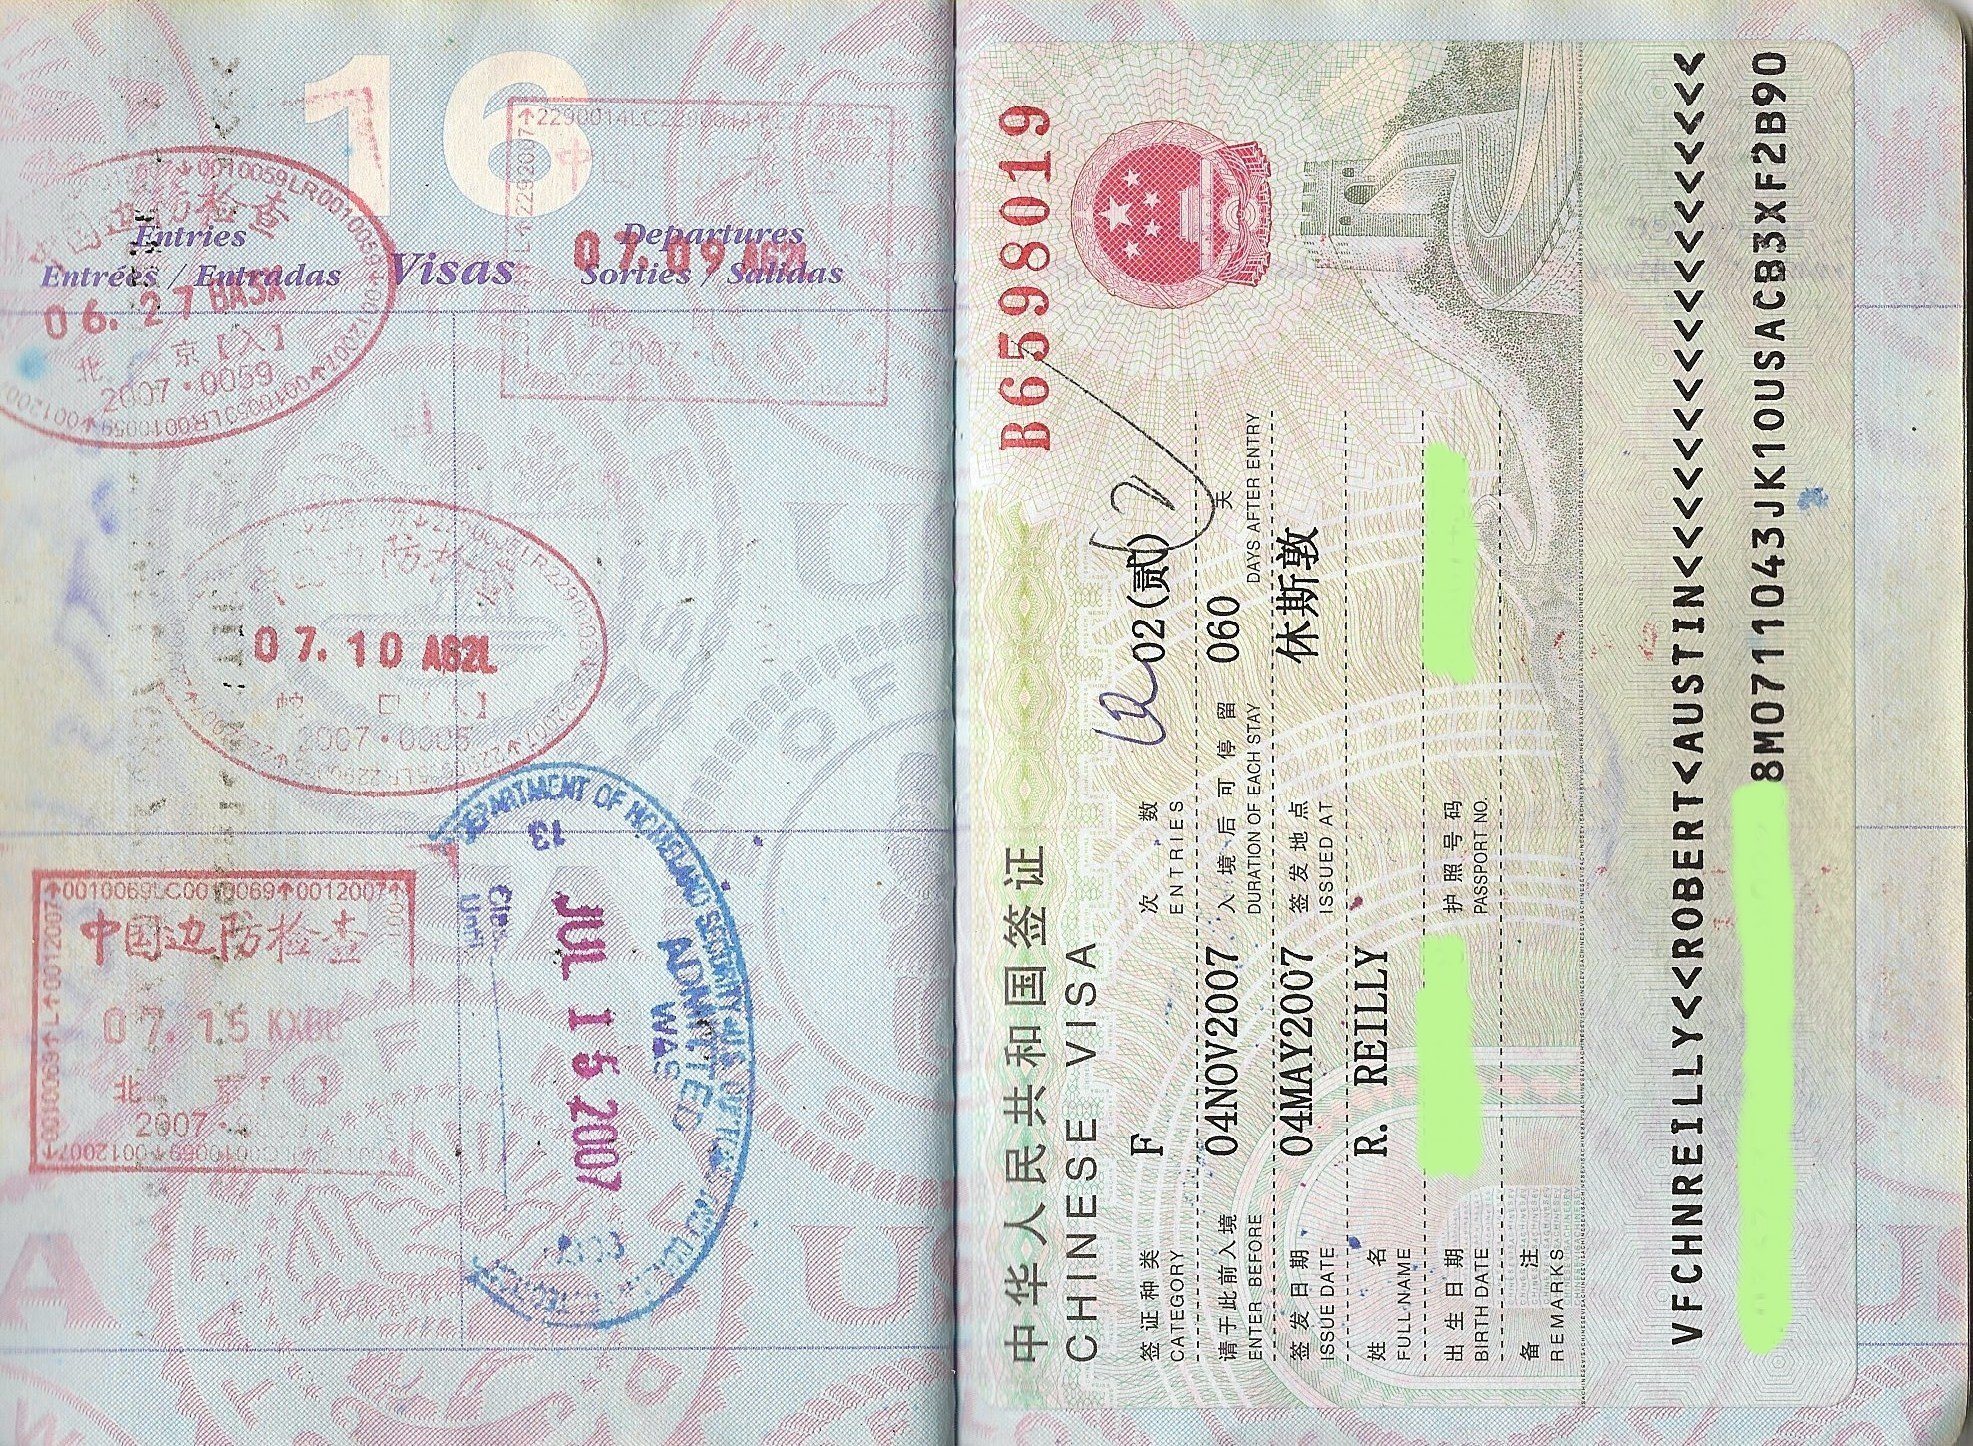 Rob Reilly's passport pages